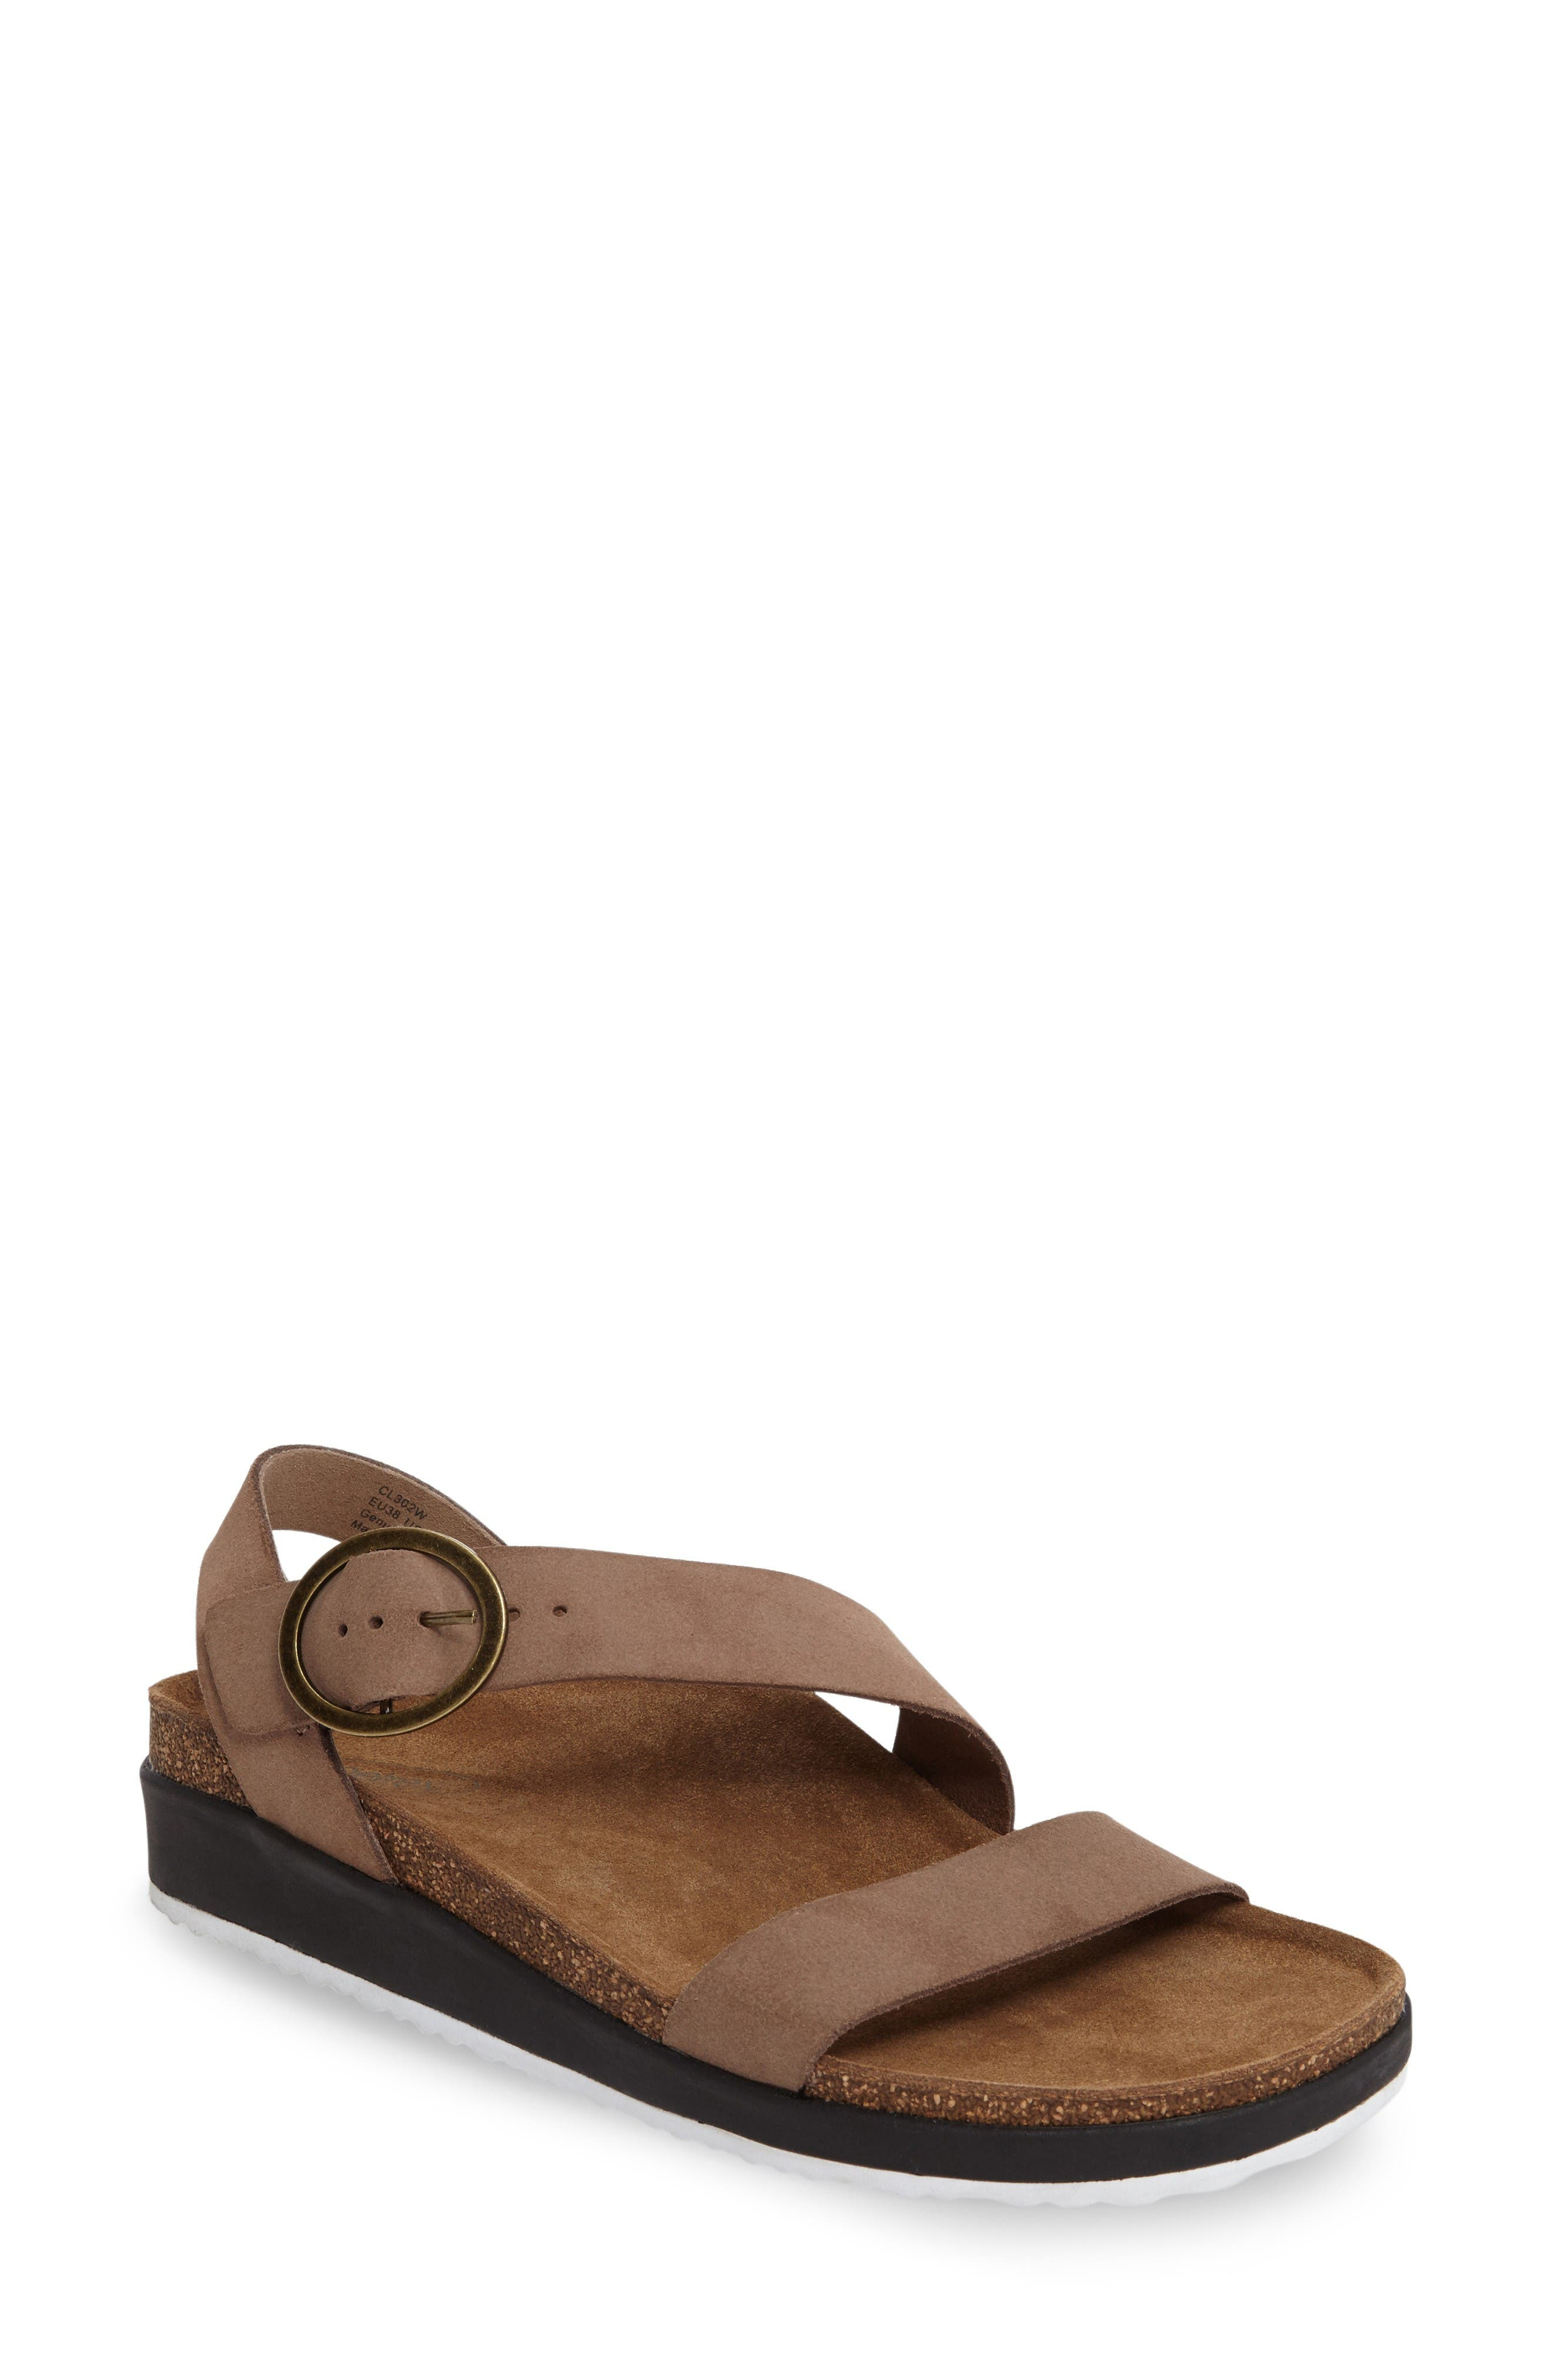 Adrianna Sandal,                         Main,                         color, Taupe Suede